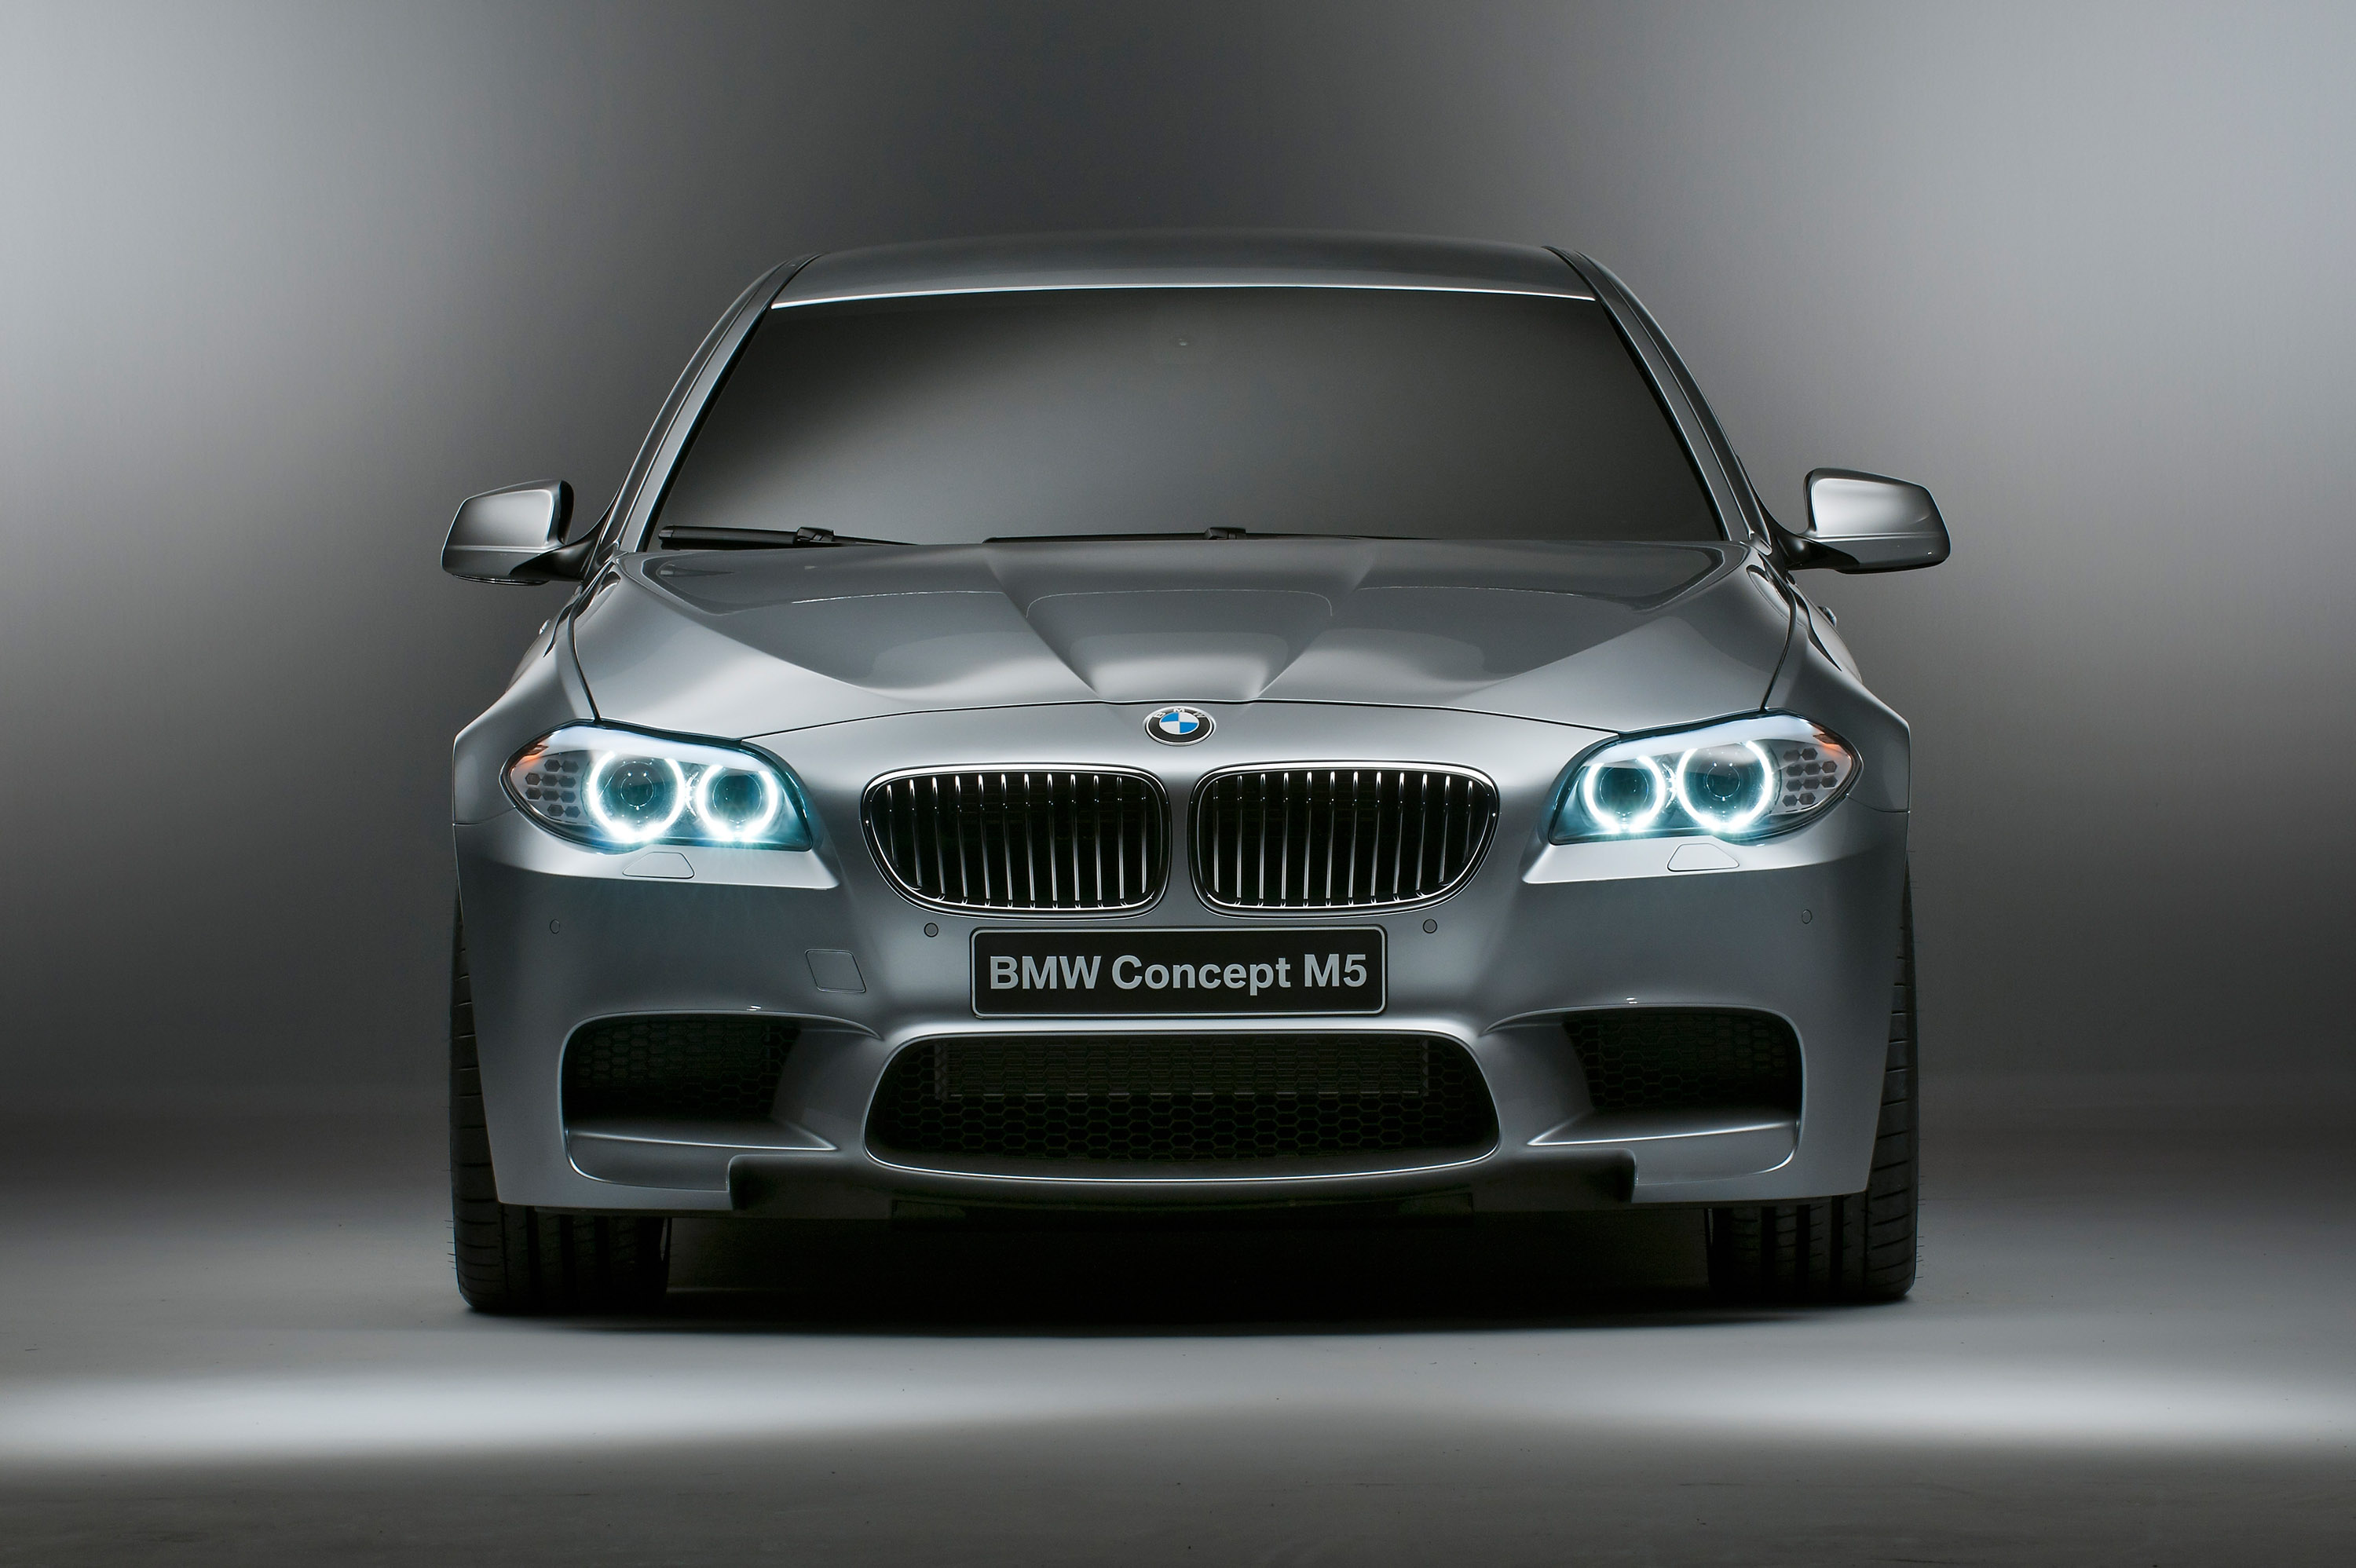 2012 Bmw F10 M5 Drift And Burnout Video